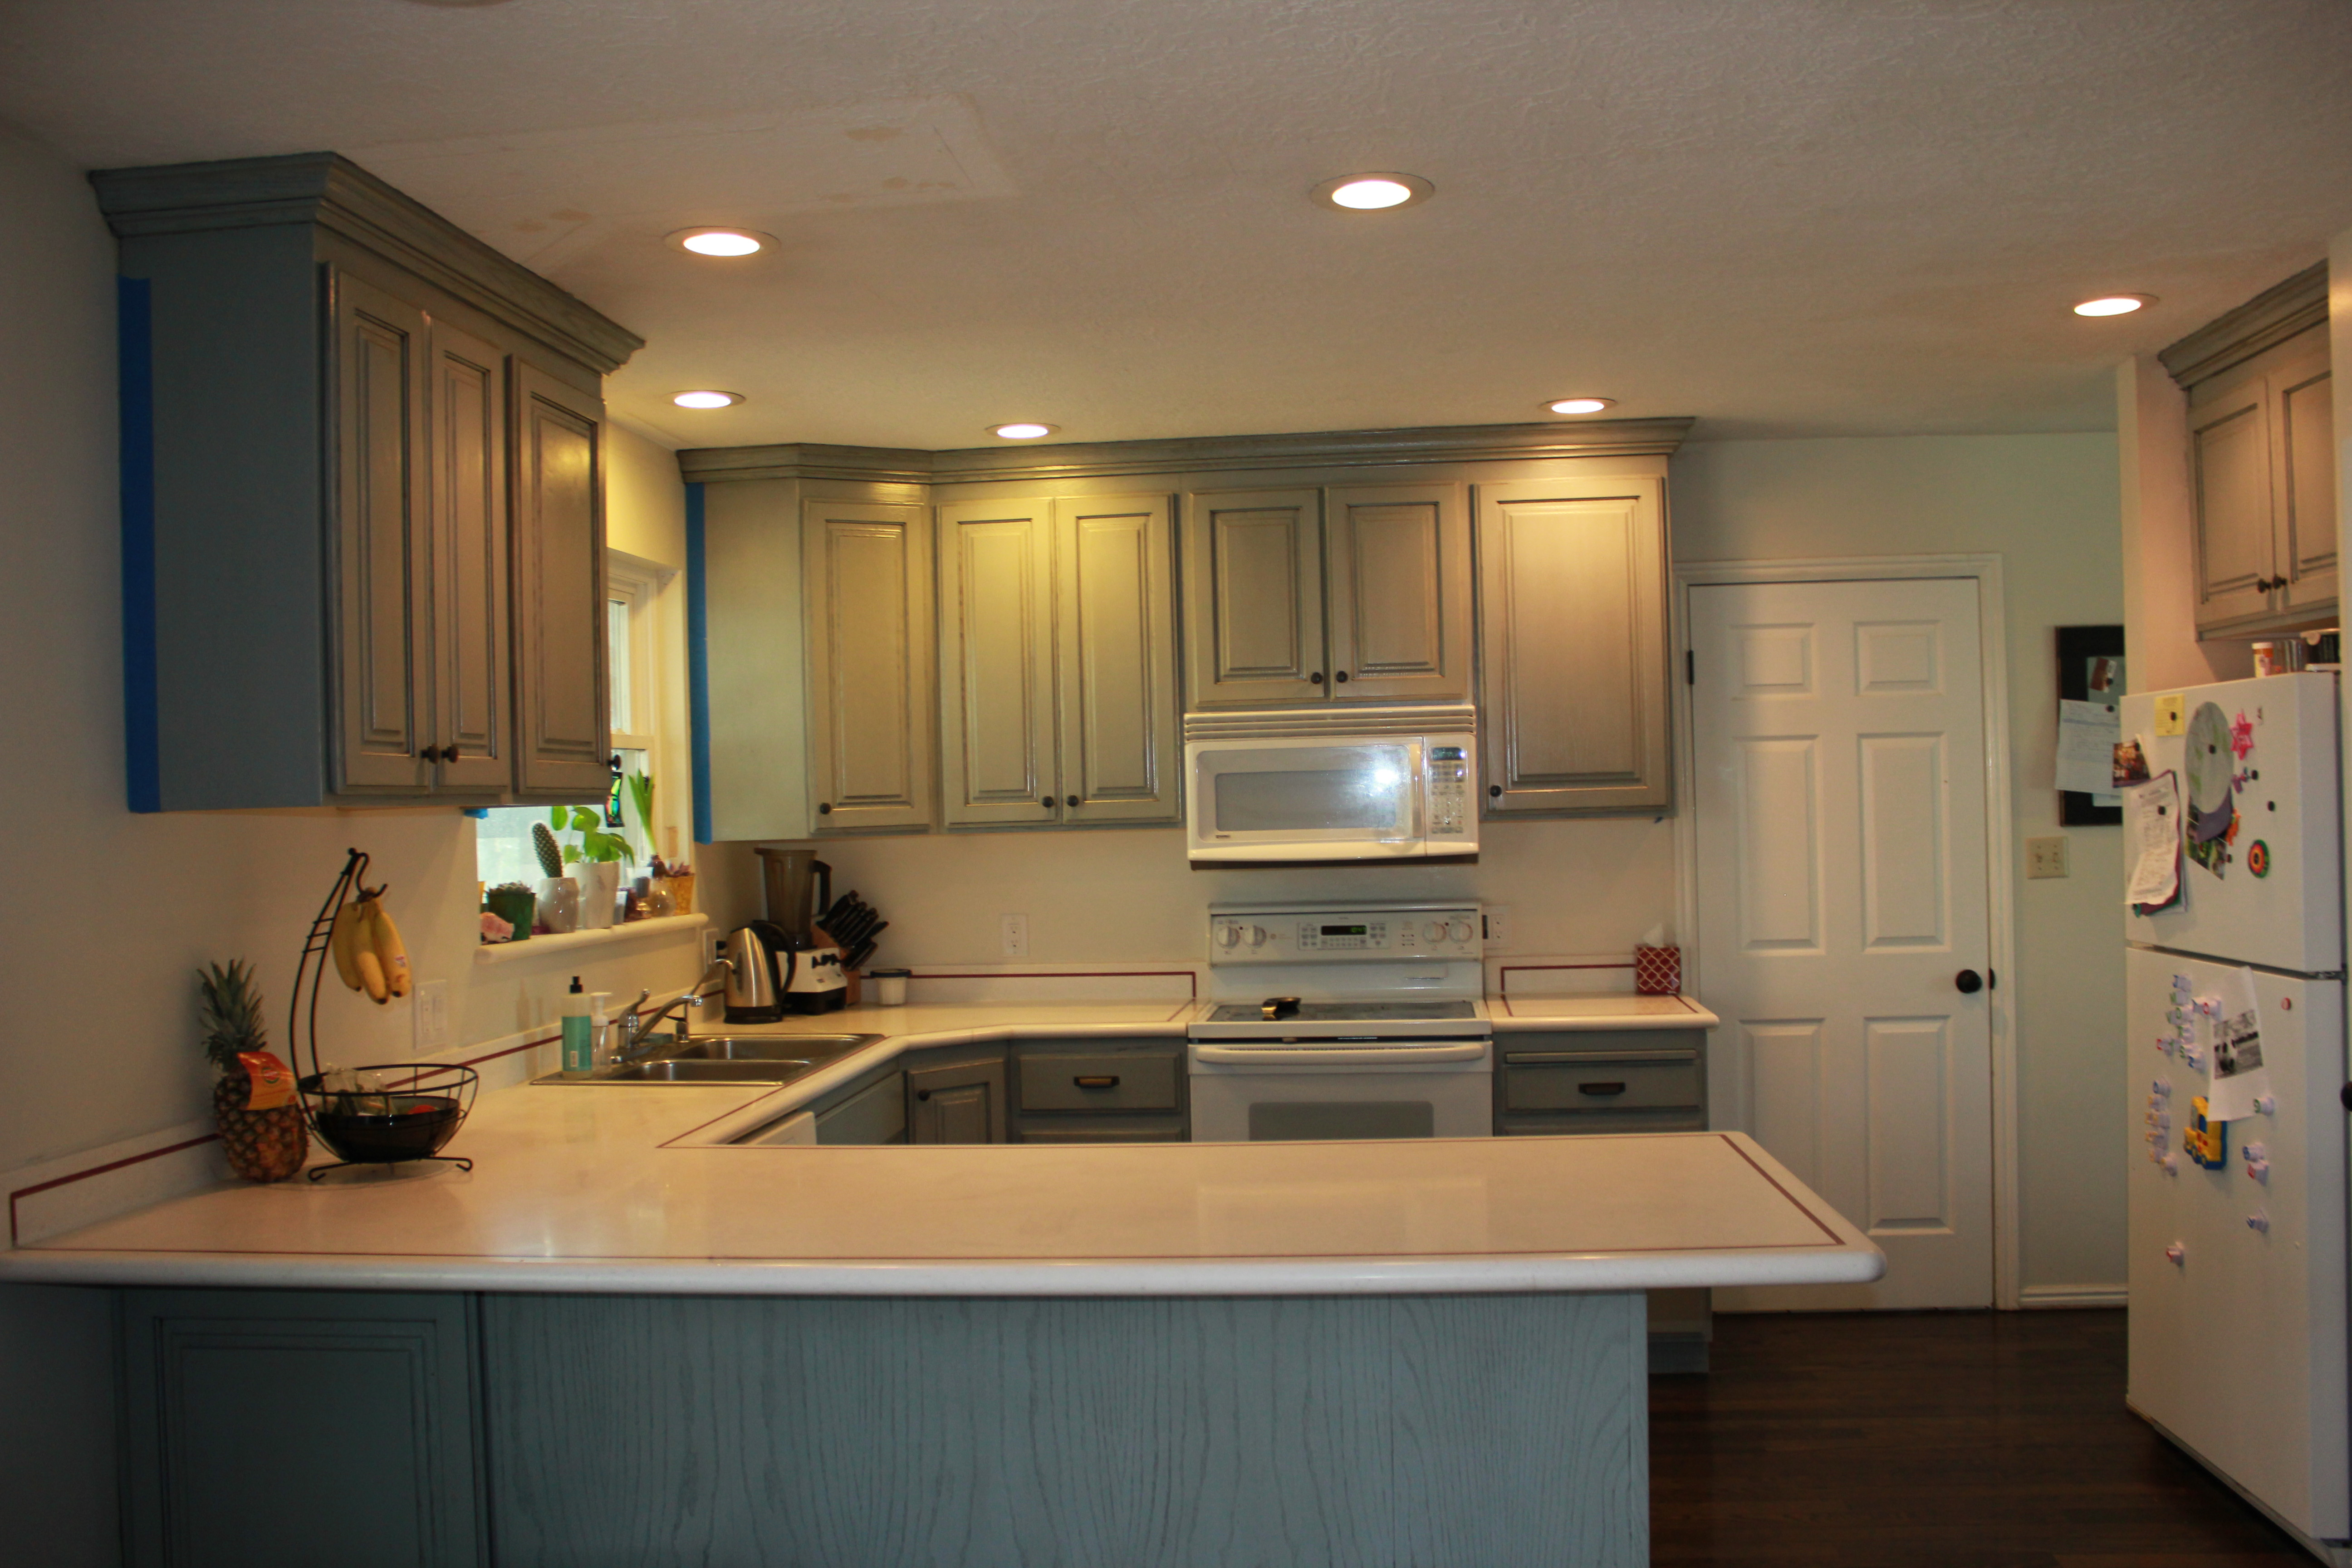 refinishing kitchen cabinets adding value to home